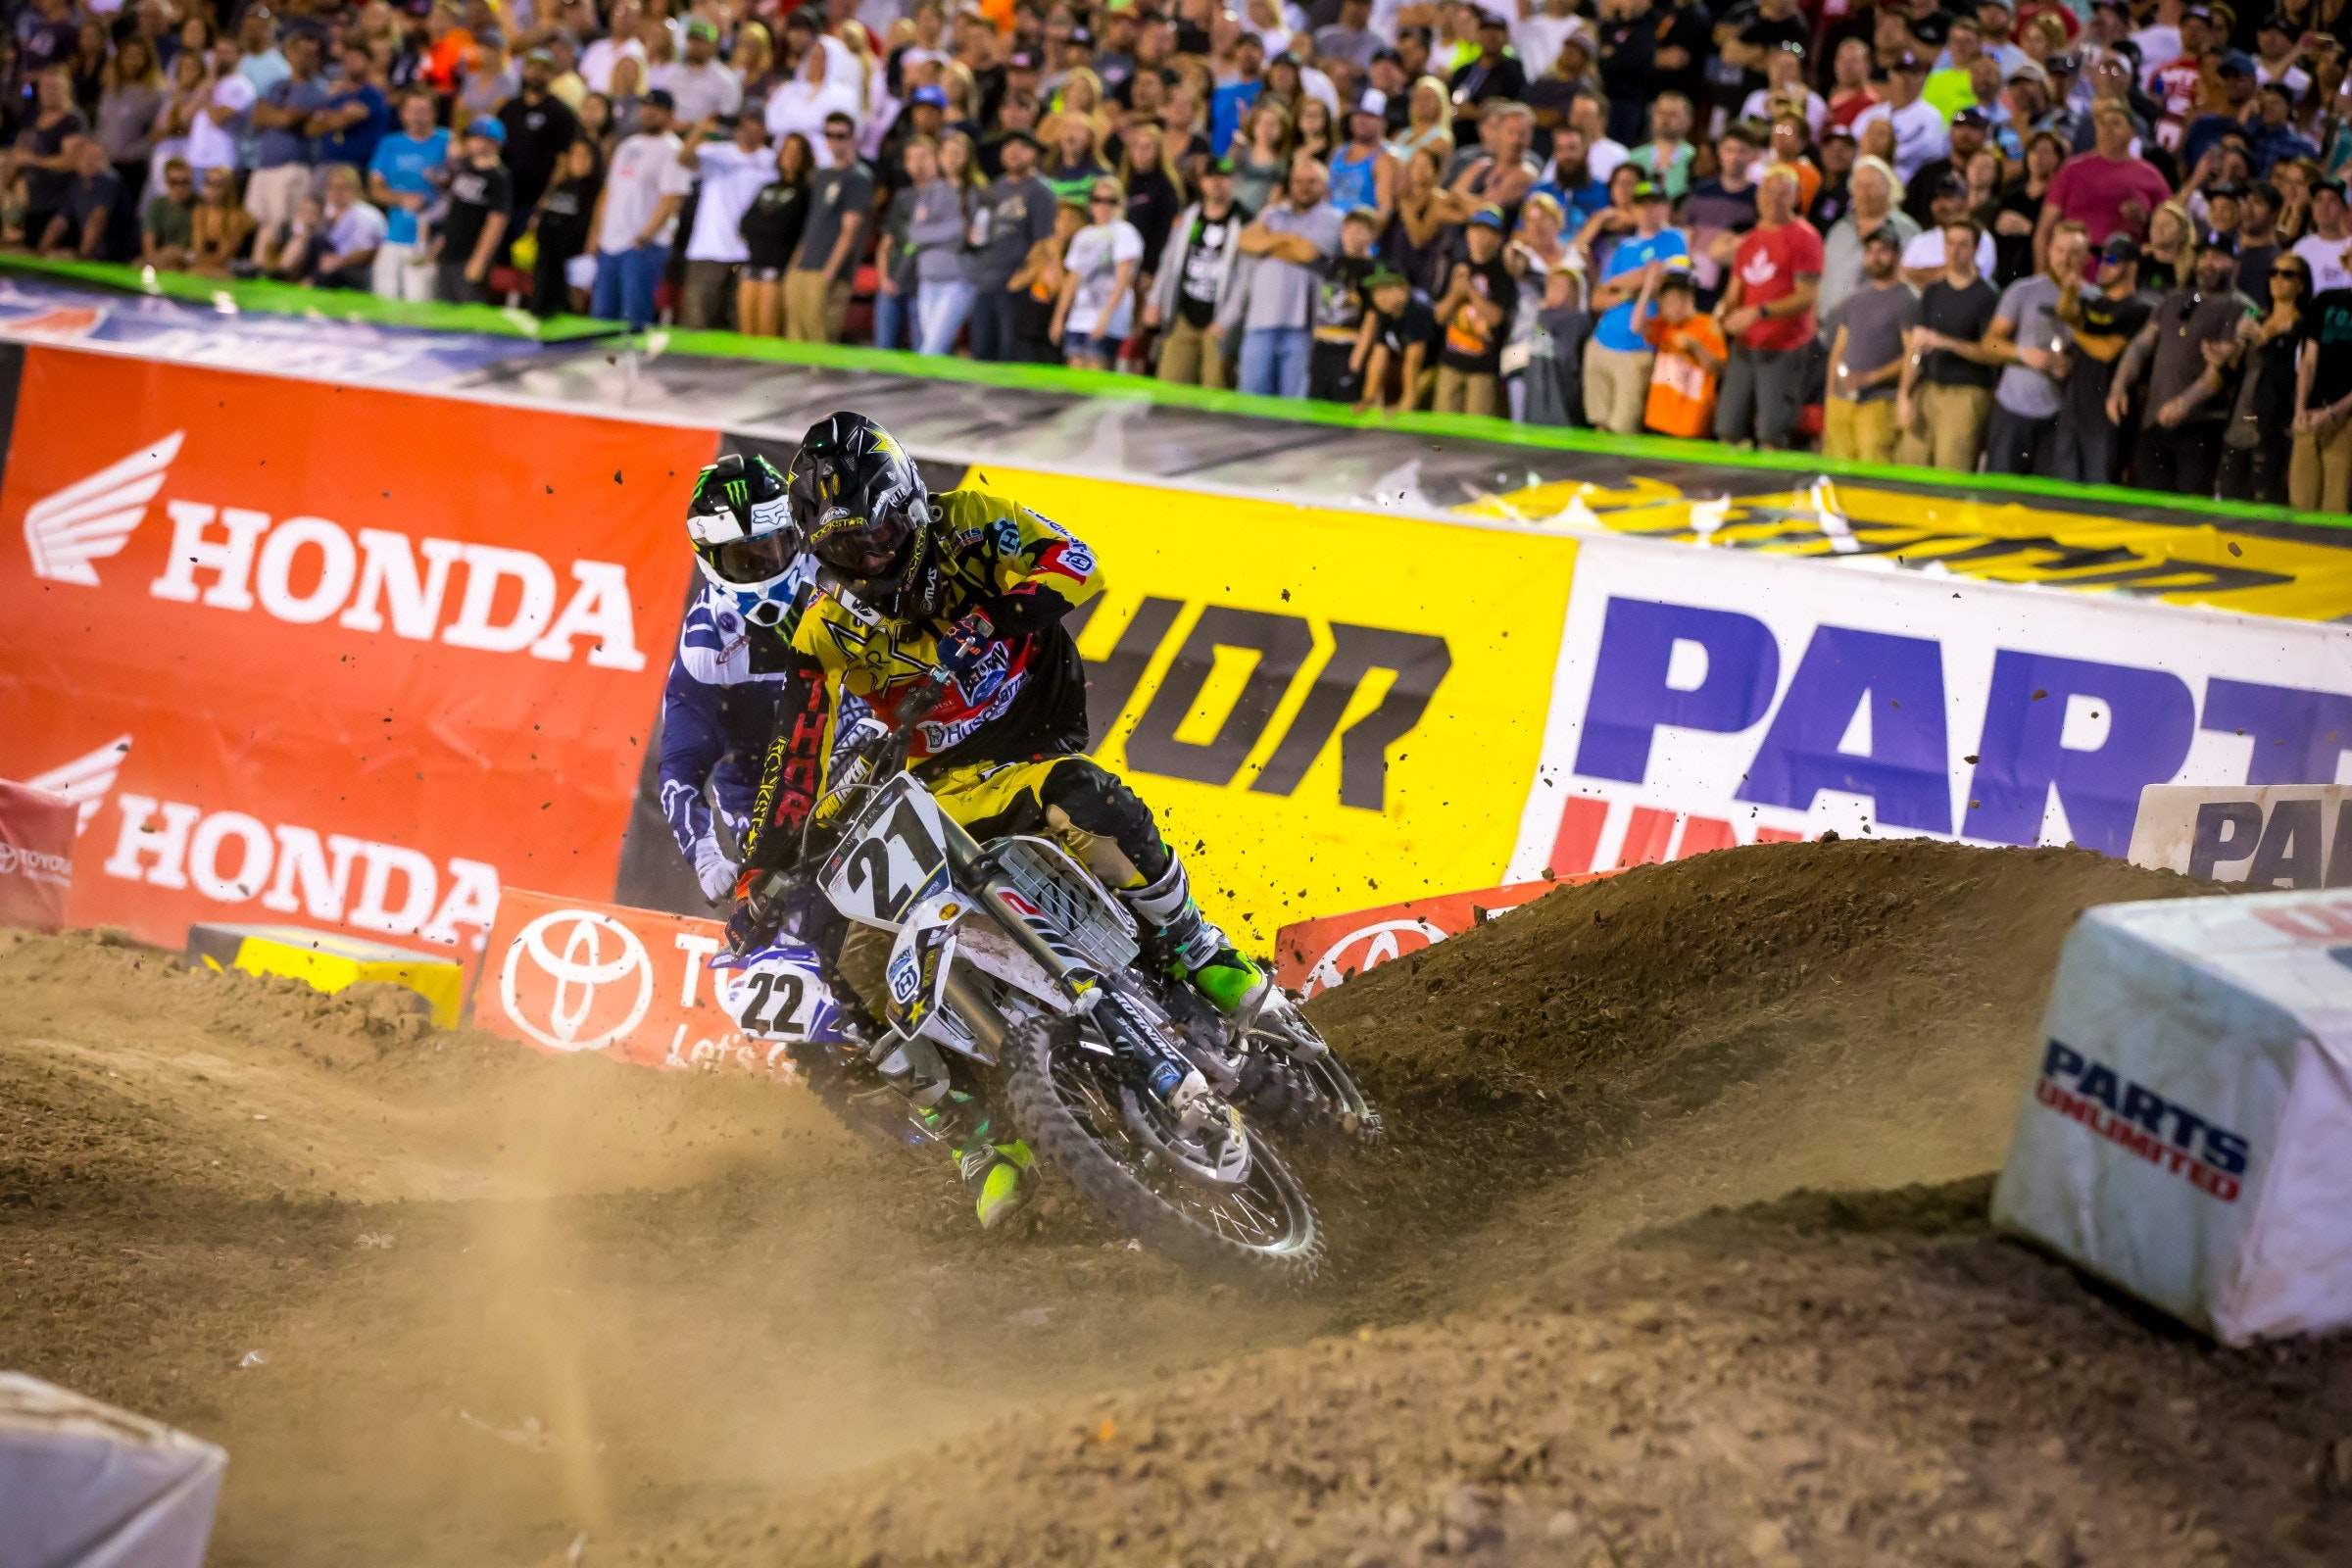 Anderson (21) and Reed had a battle for third raging just behind the Tomac and Dungey drama ahead.